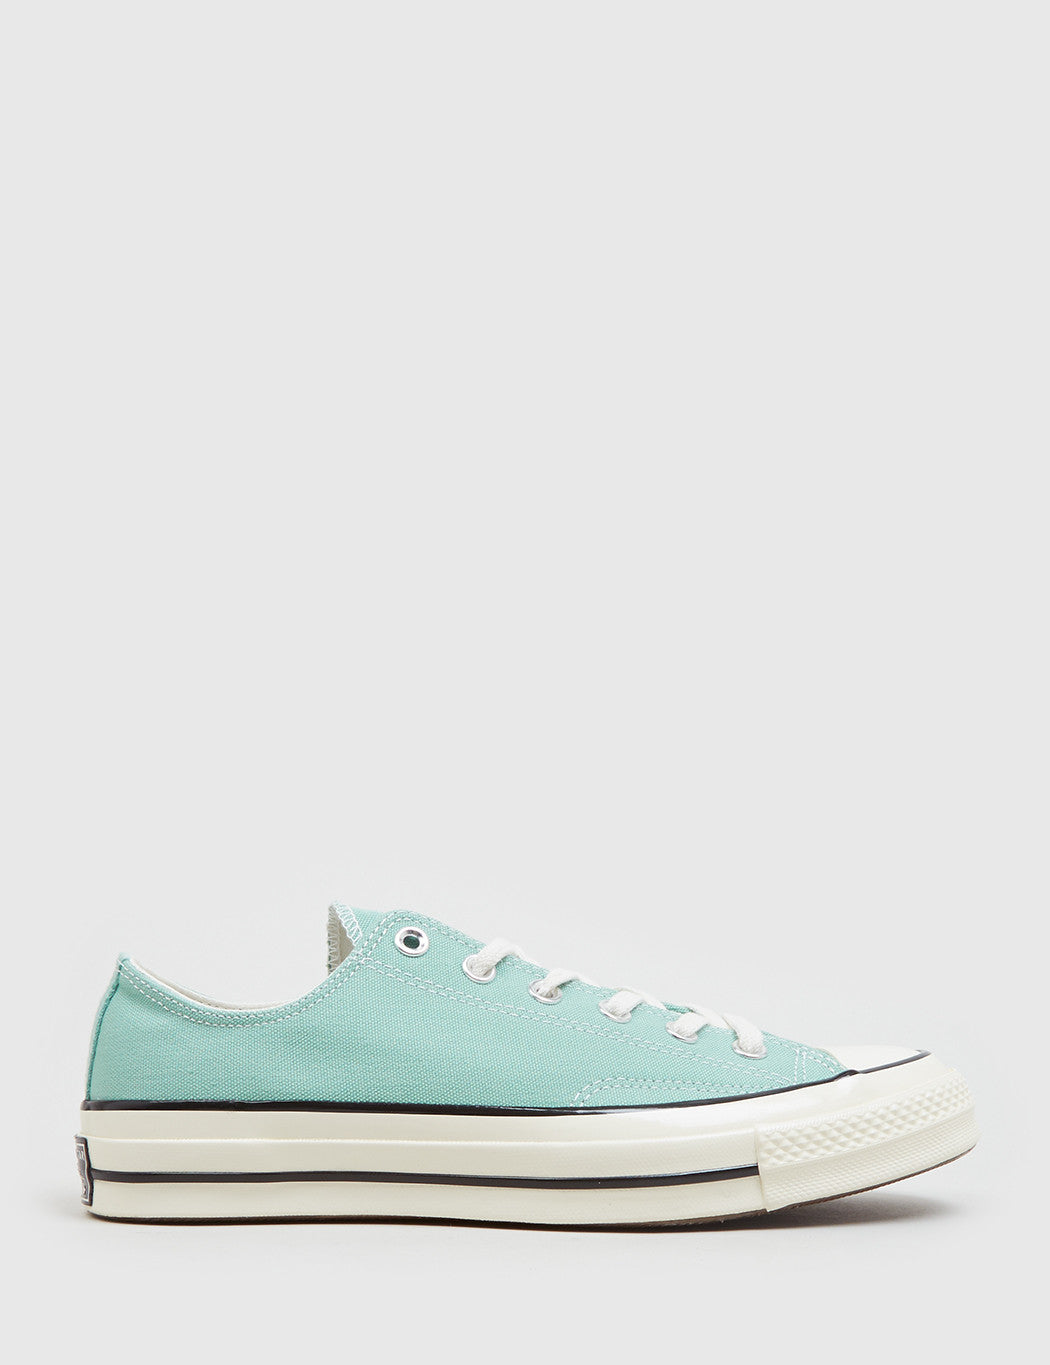 b79f3c4faaaf83 Converse 70 s Chuck Taylor Low (Canvas) - Jaded Green